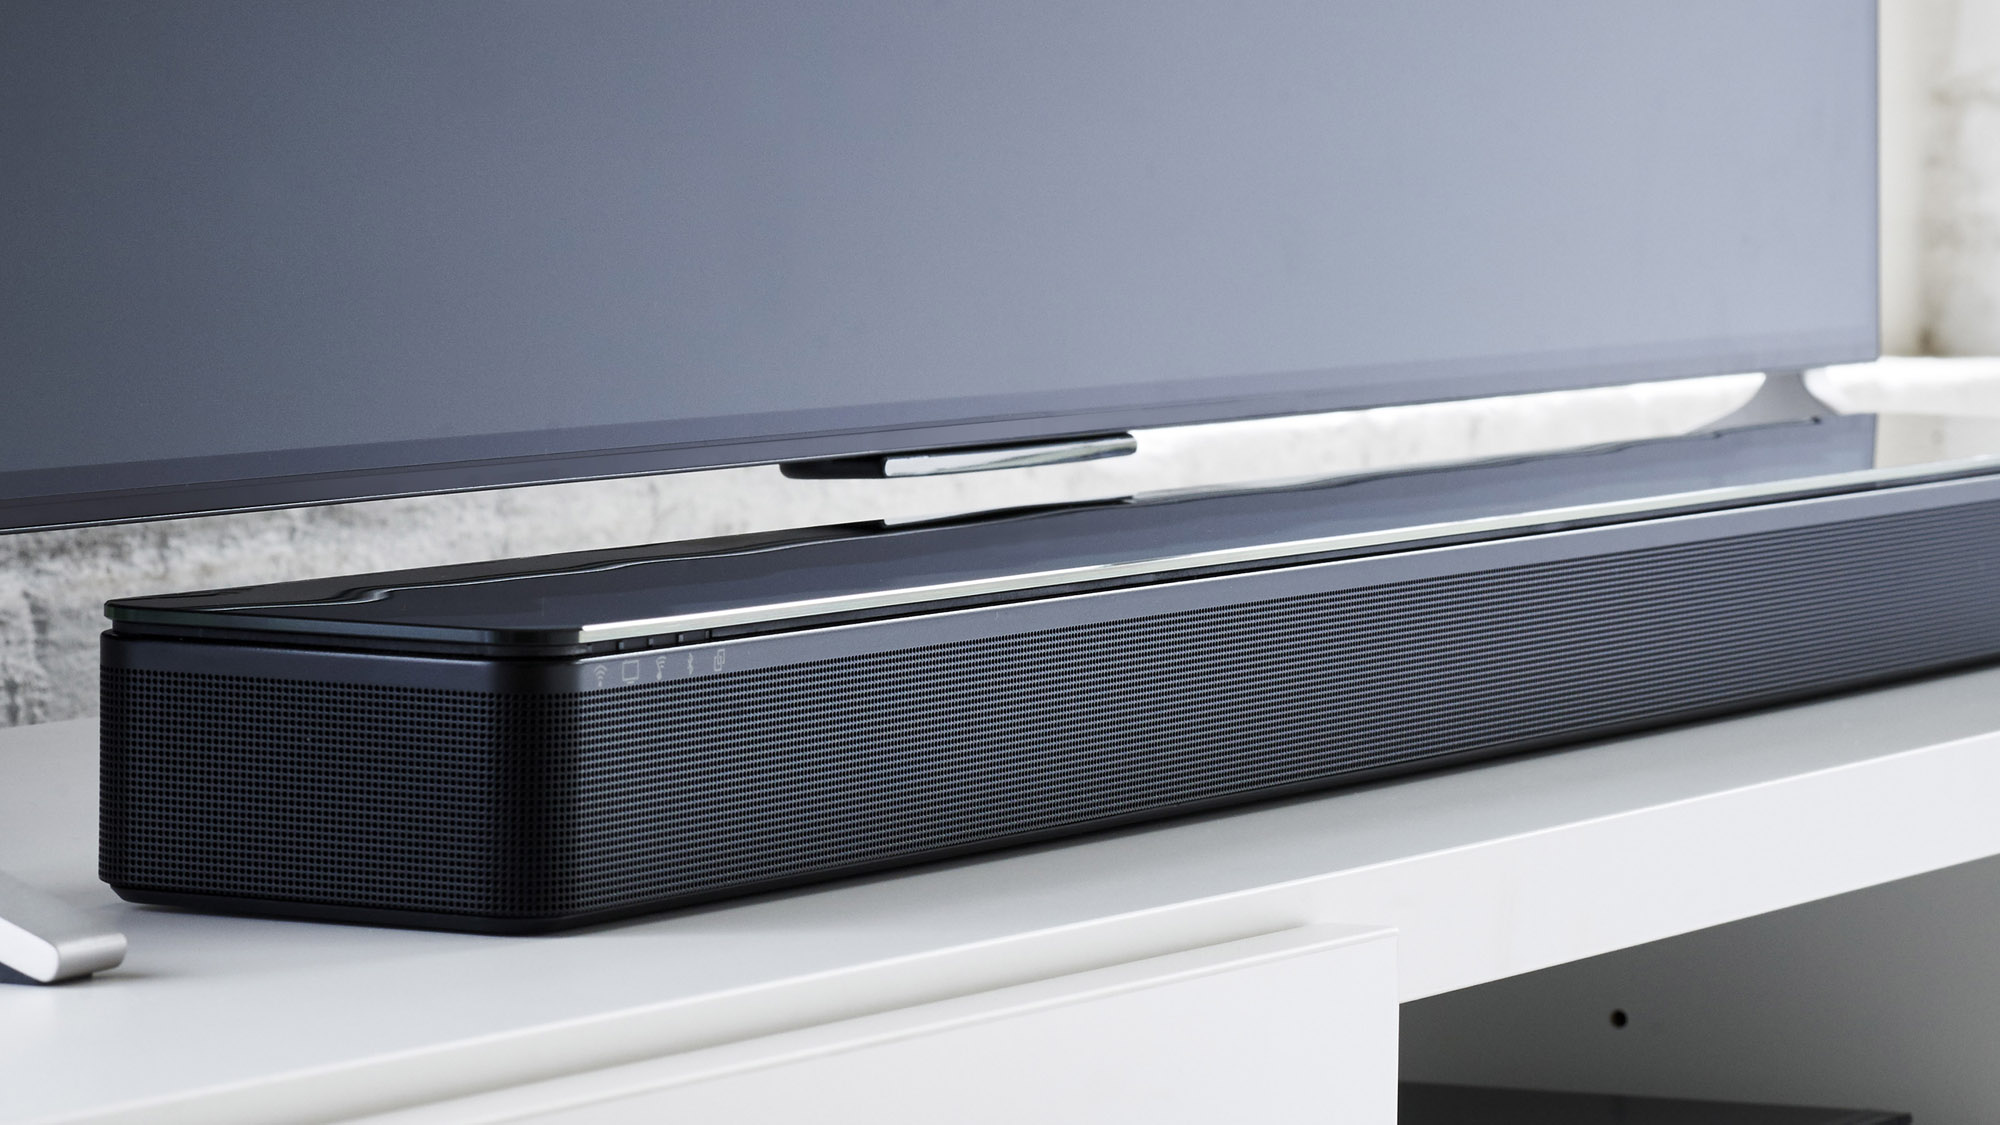 bose soundtouch 300 review slick looking but audio quality could be better expert reviews. Black Bedroom Furniture Sets. Home Design Ideas